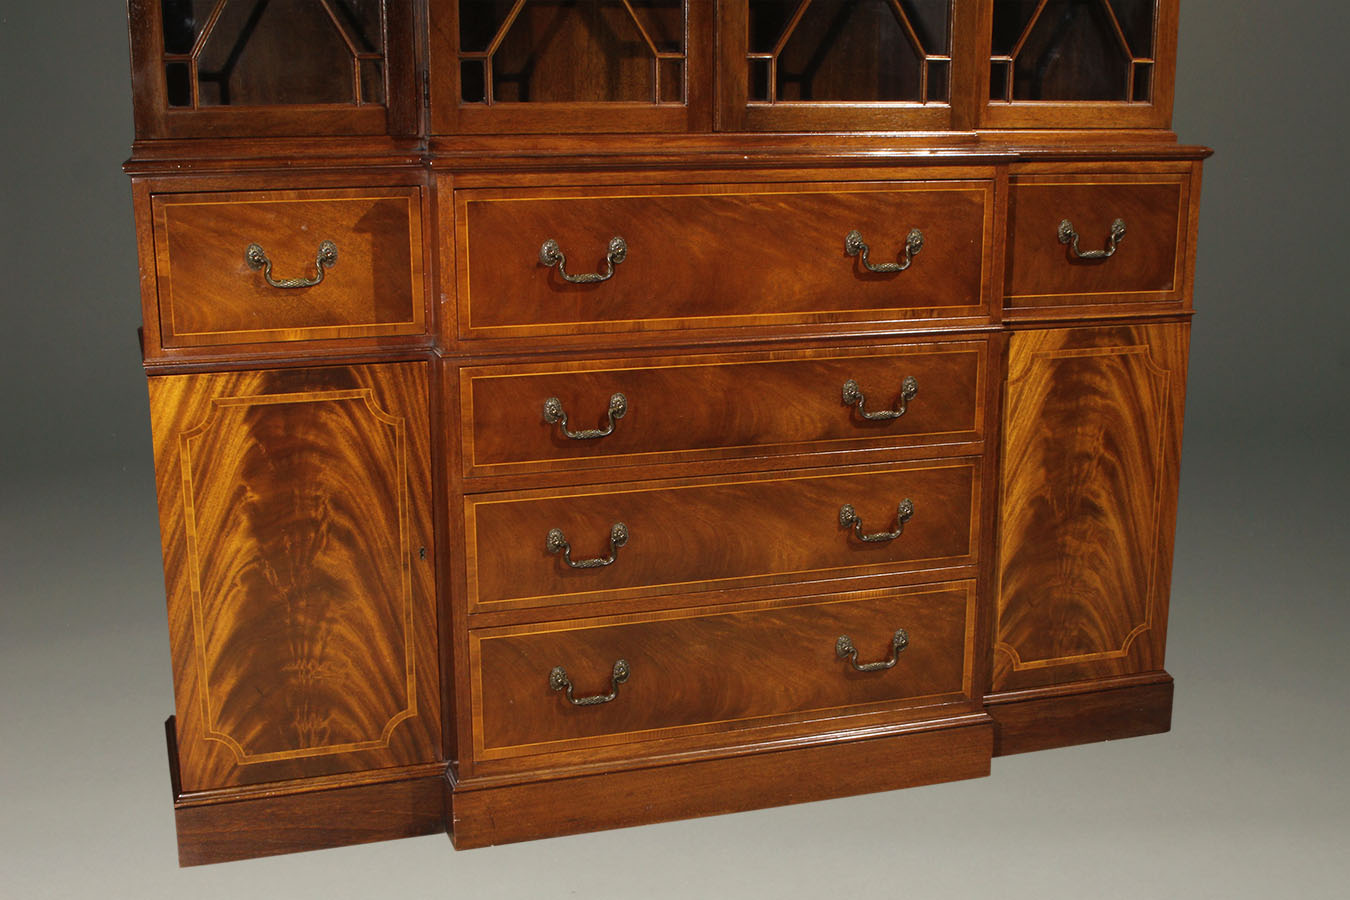 Baker furniture company colonial revival styled breakfront for Baker furniture